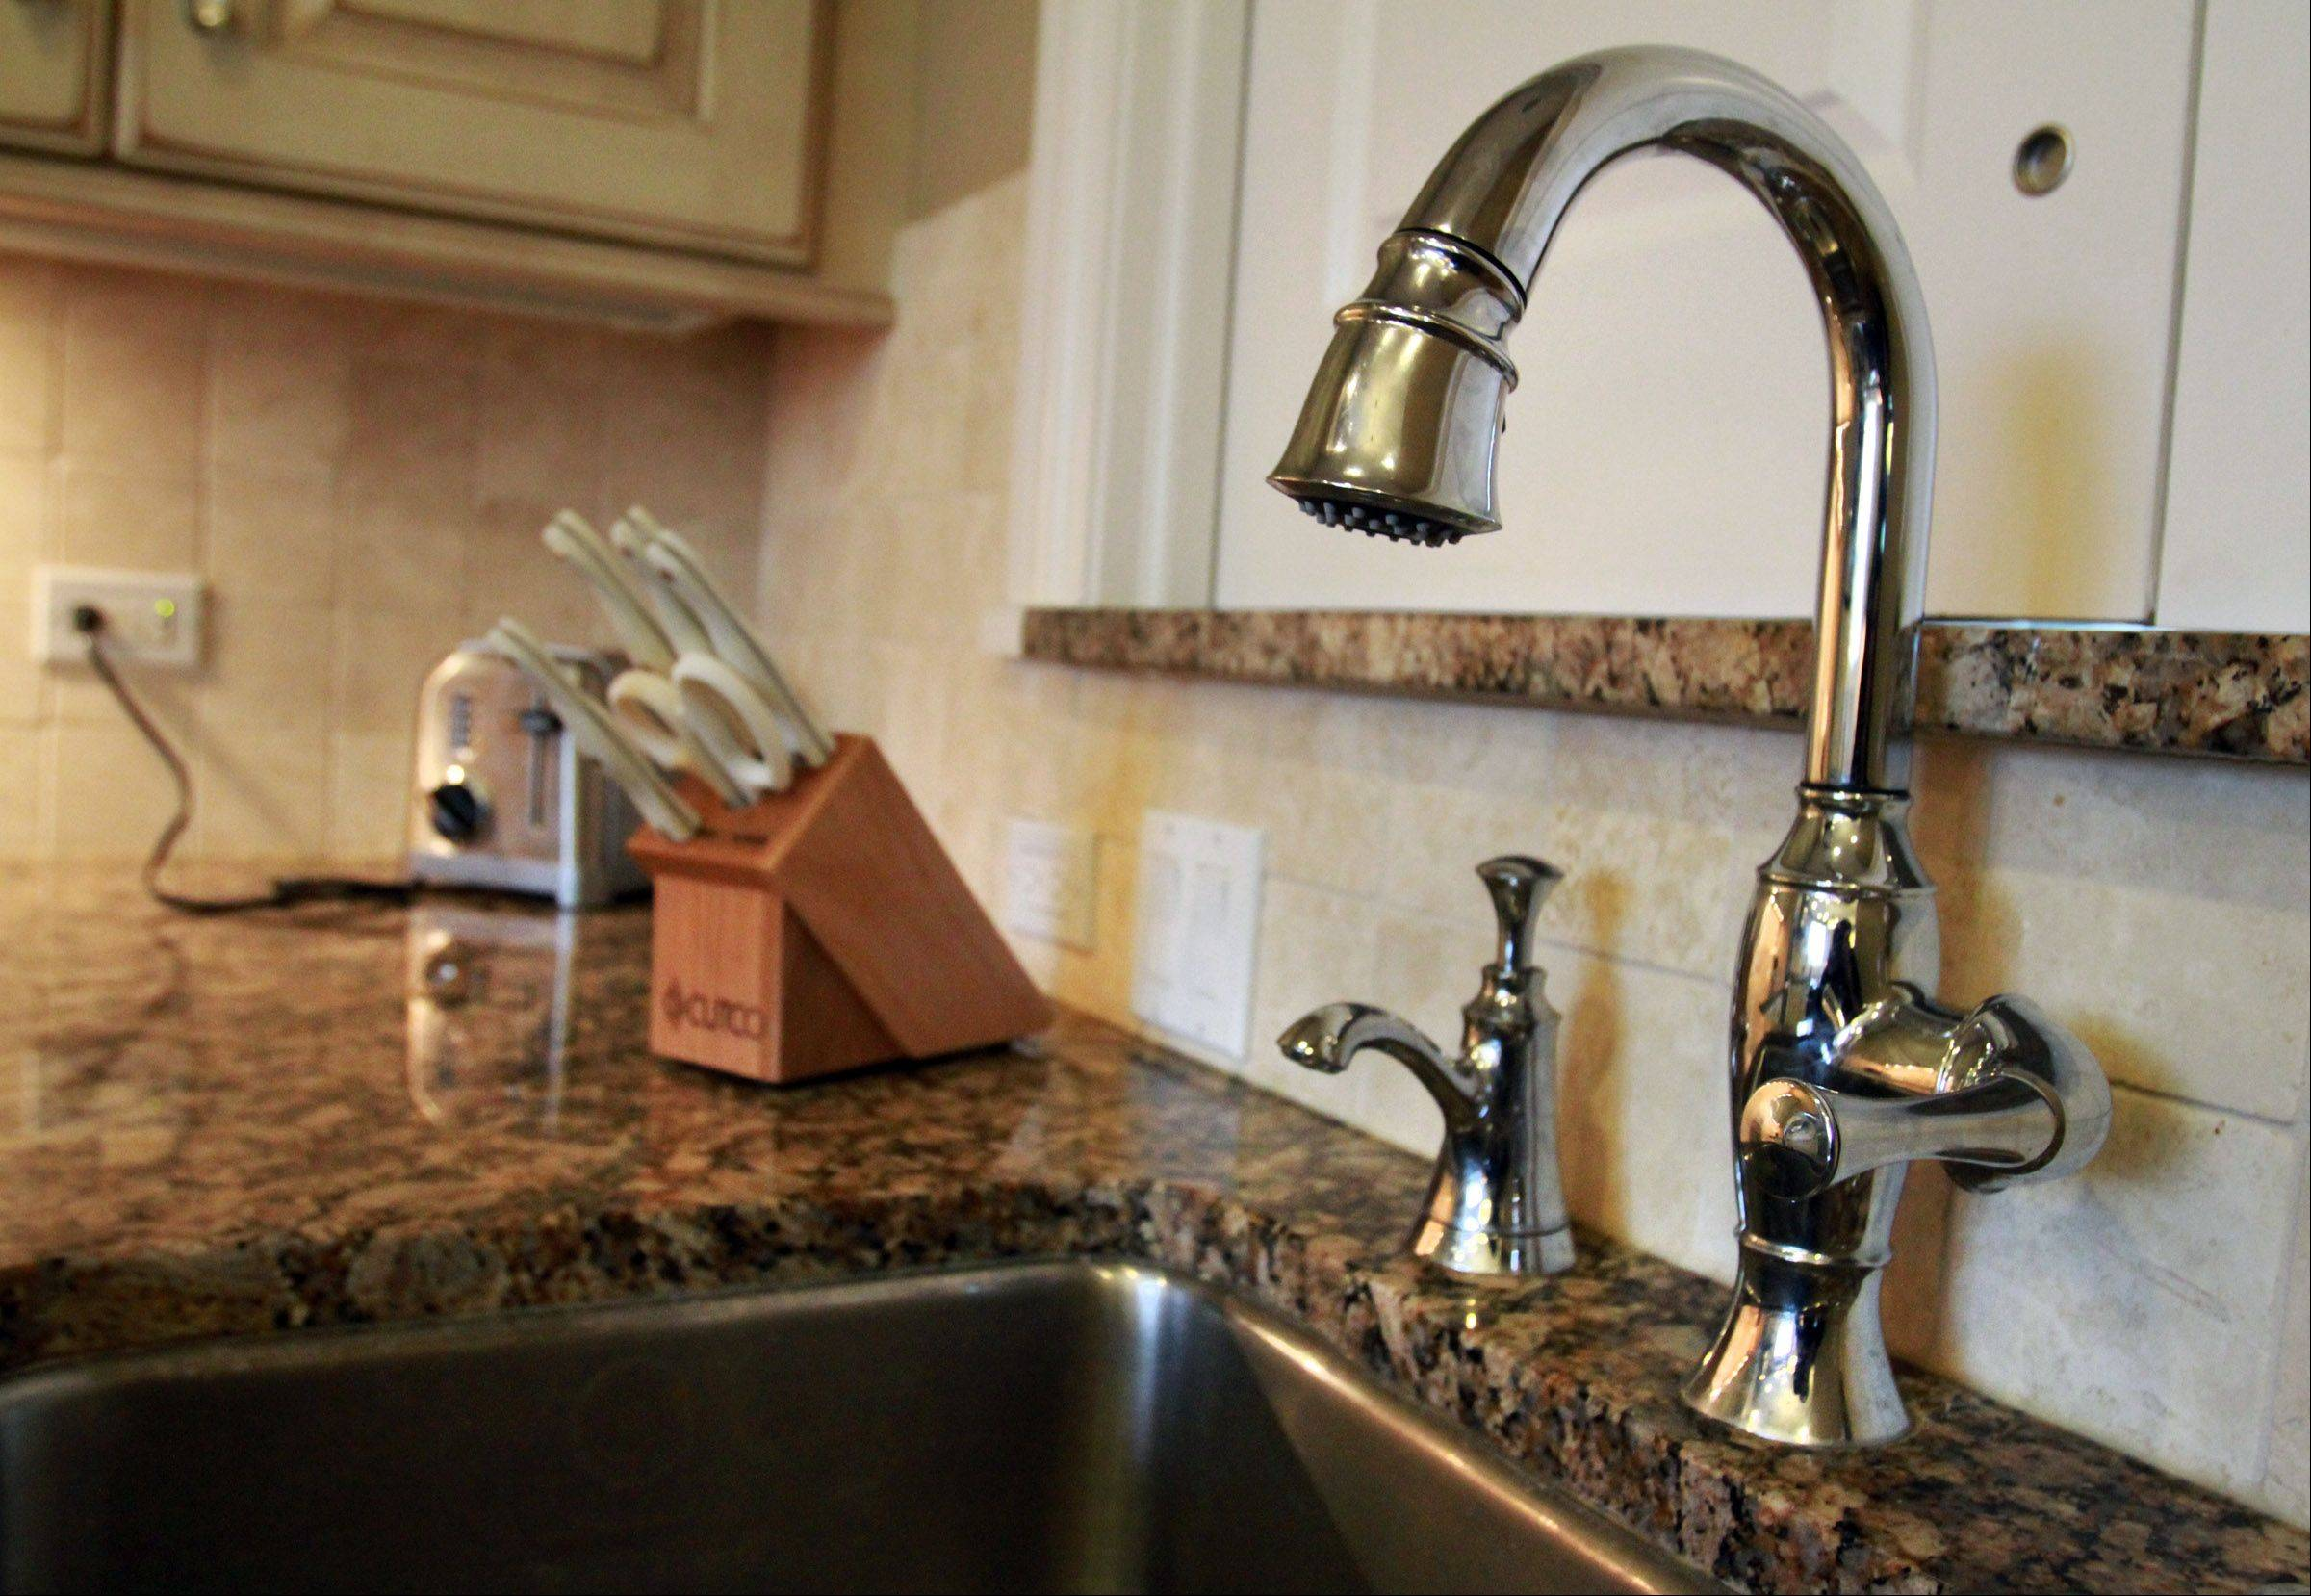 Sinks on opposite sides of the kitchen help the Fretzin family maintain a kosher kitchen.